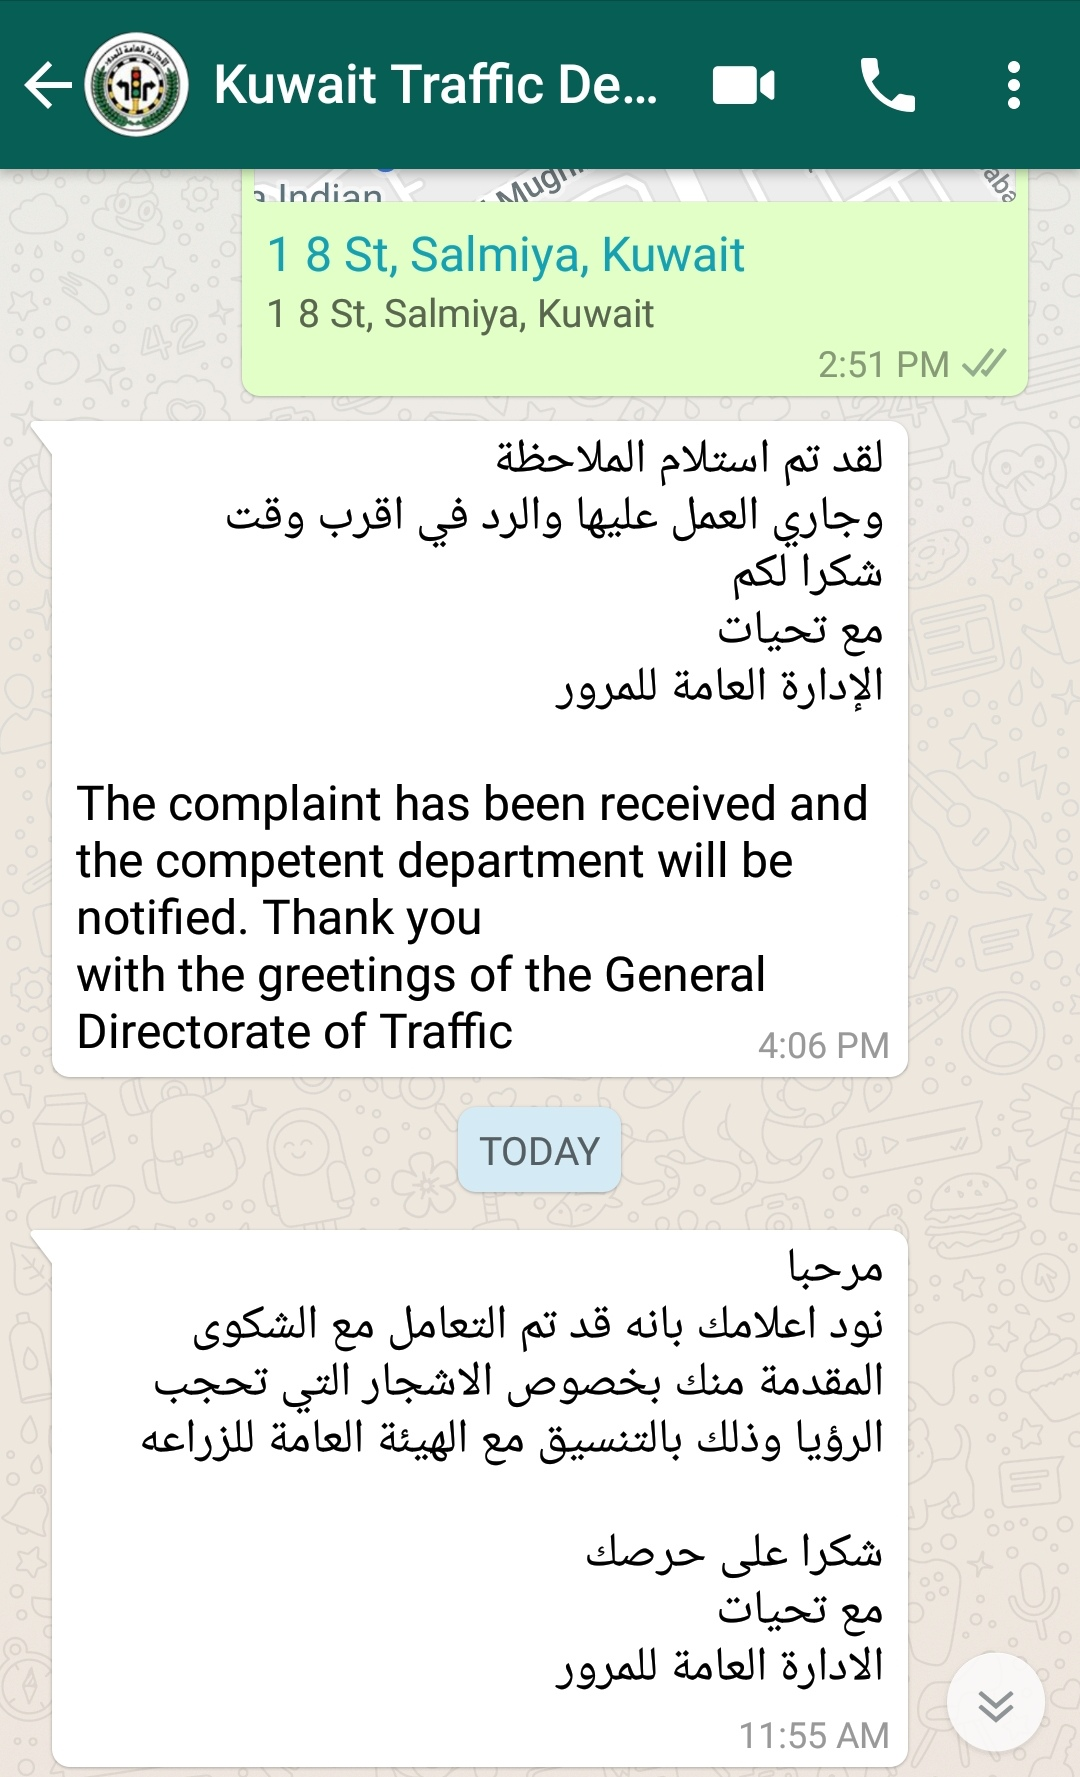 *K-Tic's WhatsApp request to Kuwait Ministry - Action done within 24 hours...*